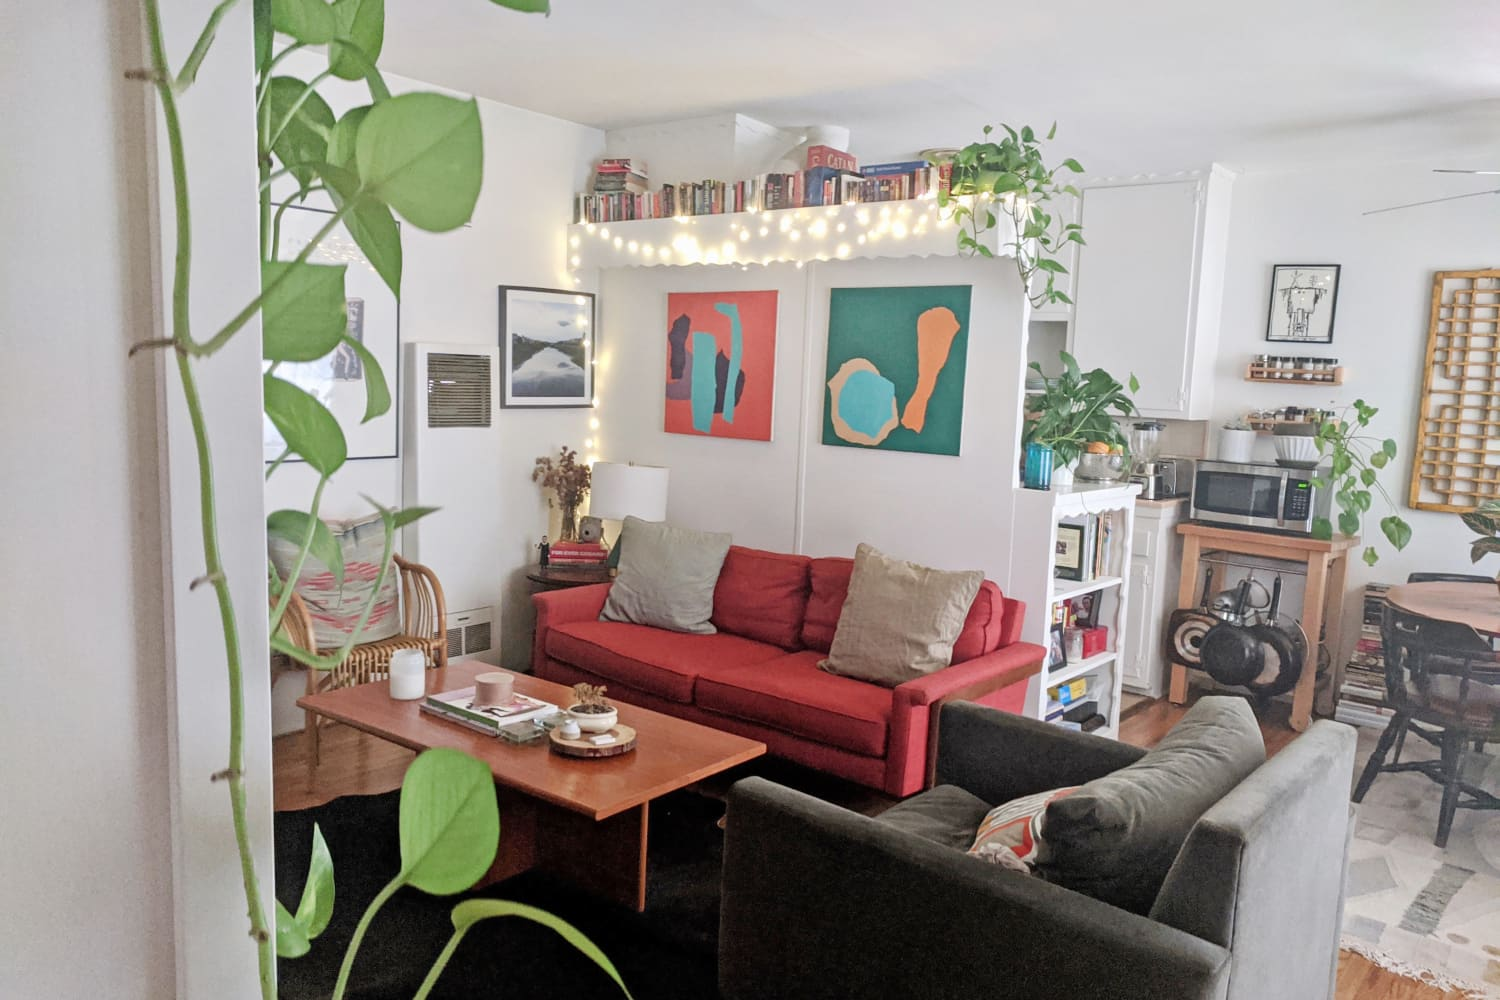 A Shared 450-Square-Foot Rental Apartment Is Small, But Full of Personality